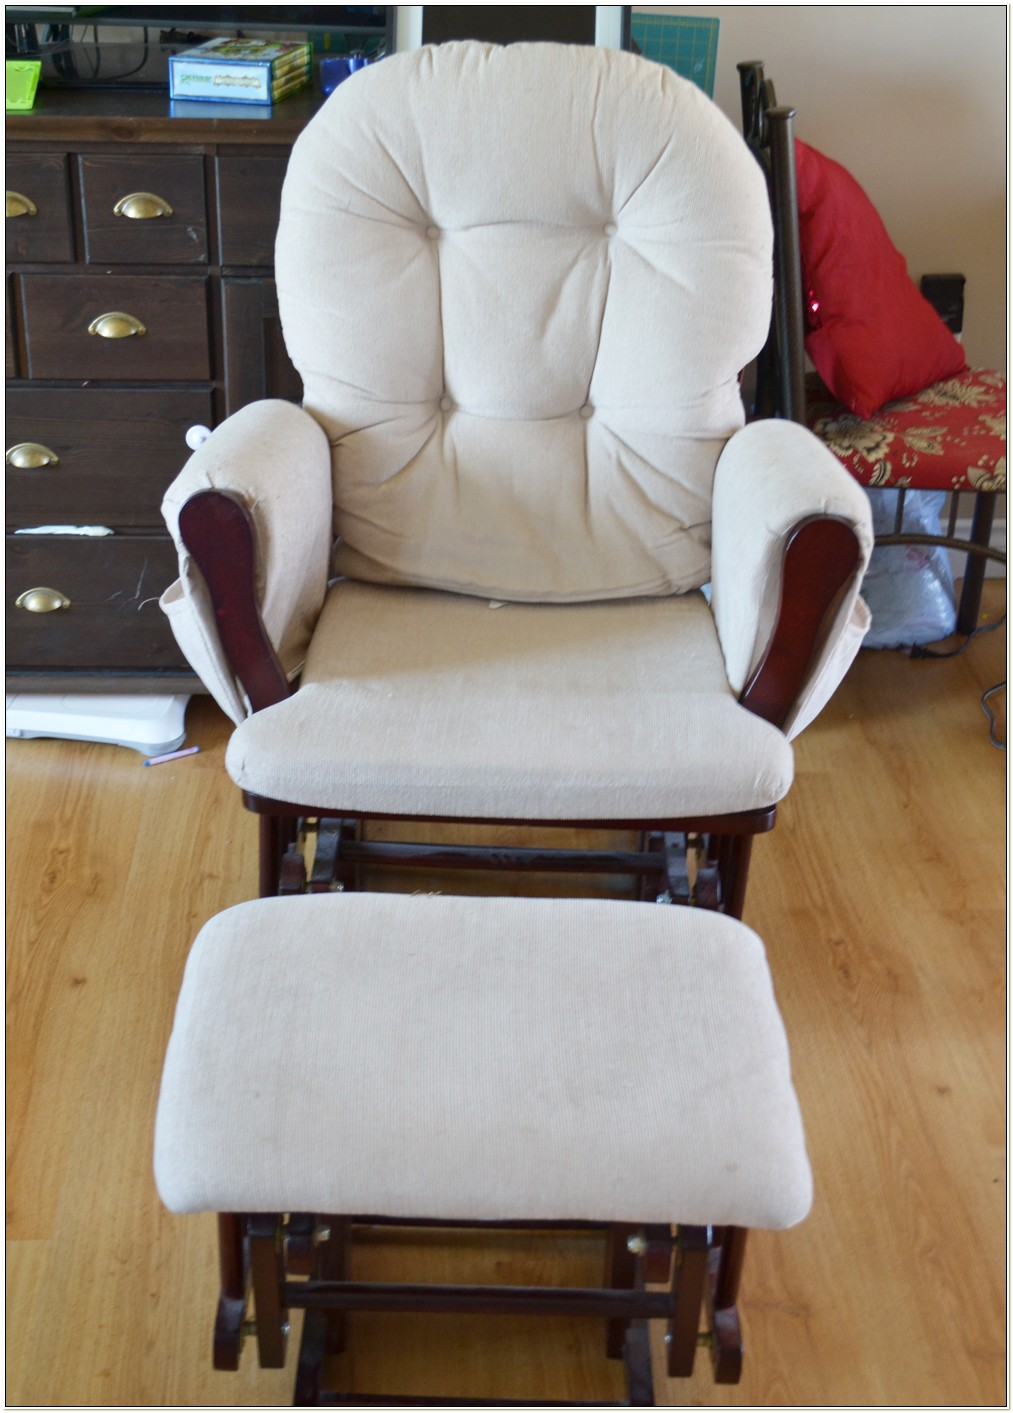 Rocking Glider Chair For Nursery Canada